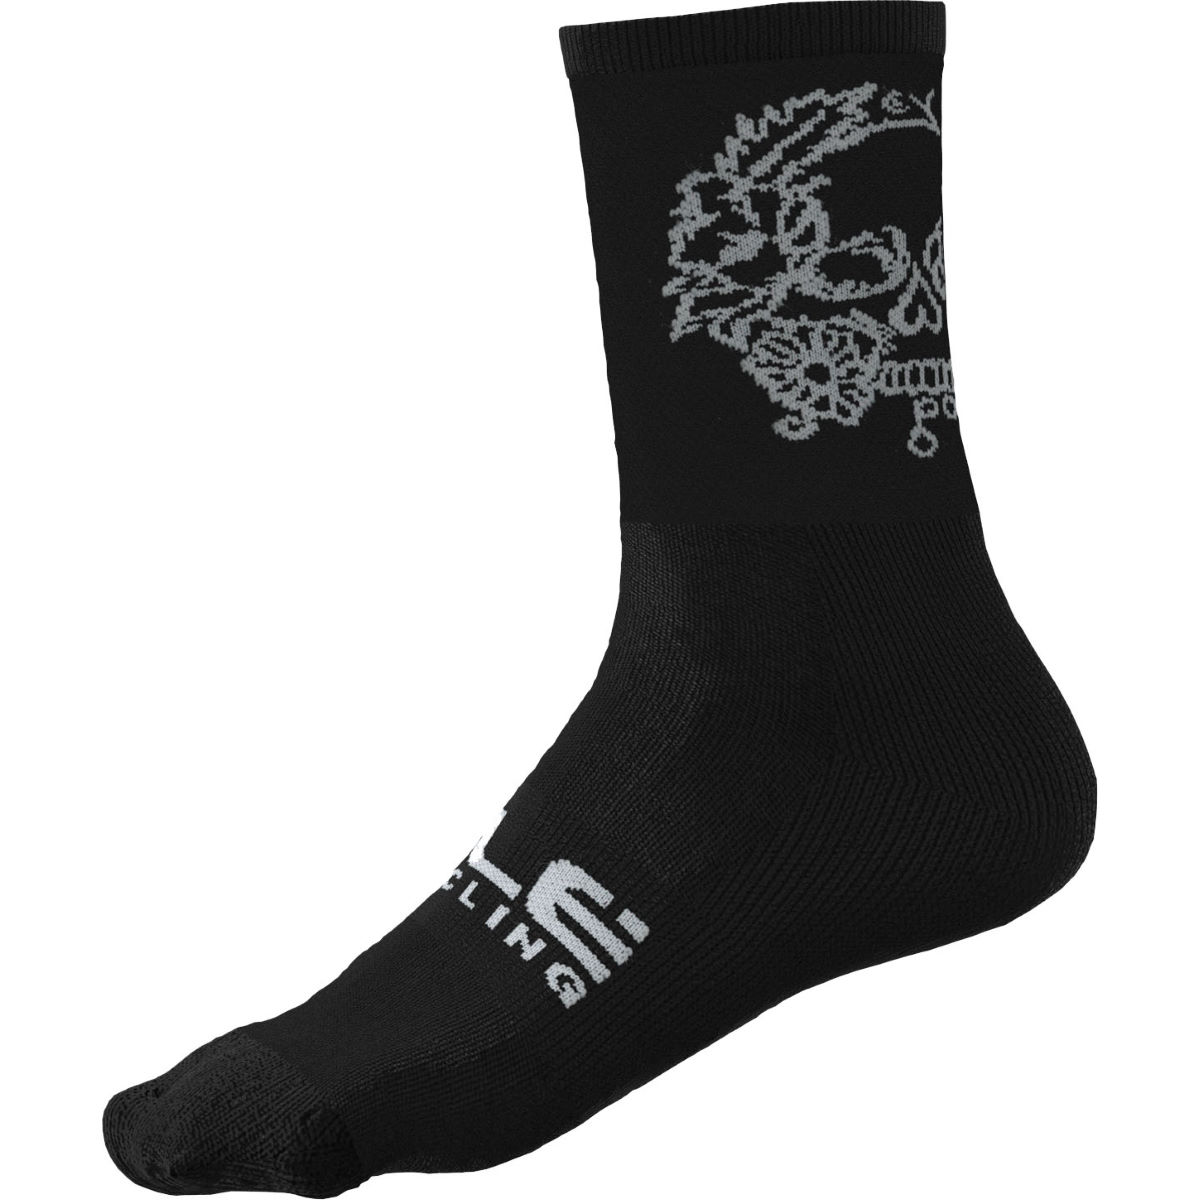 Compressport Full Recovery Socks   Compression Socks